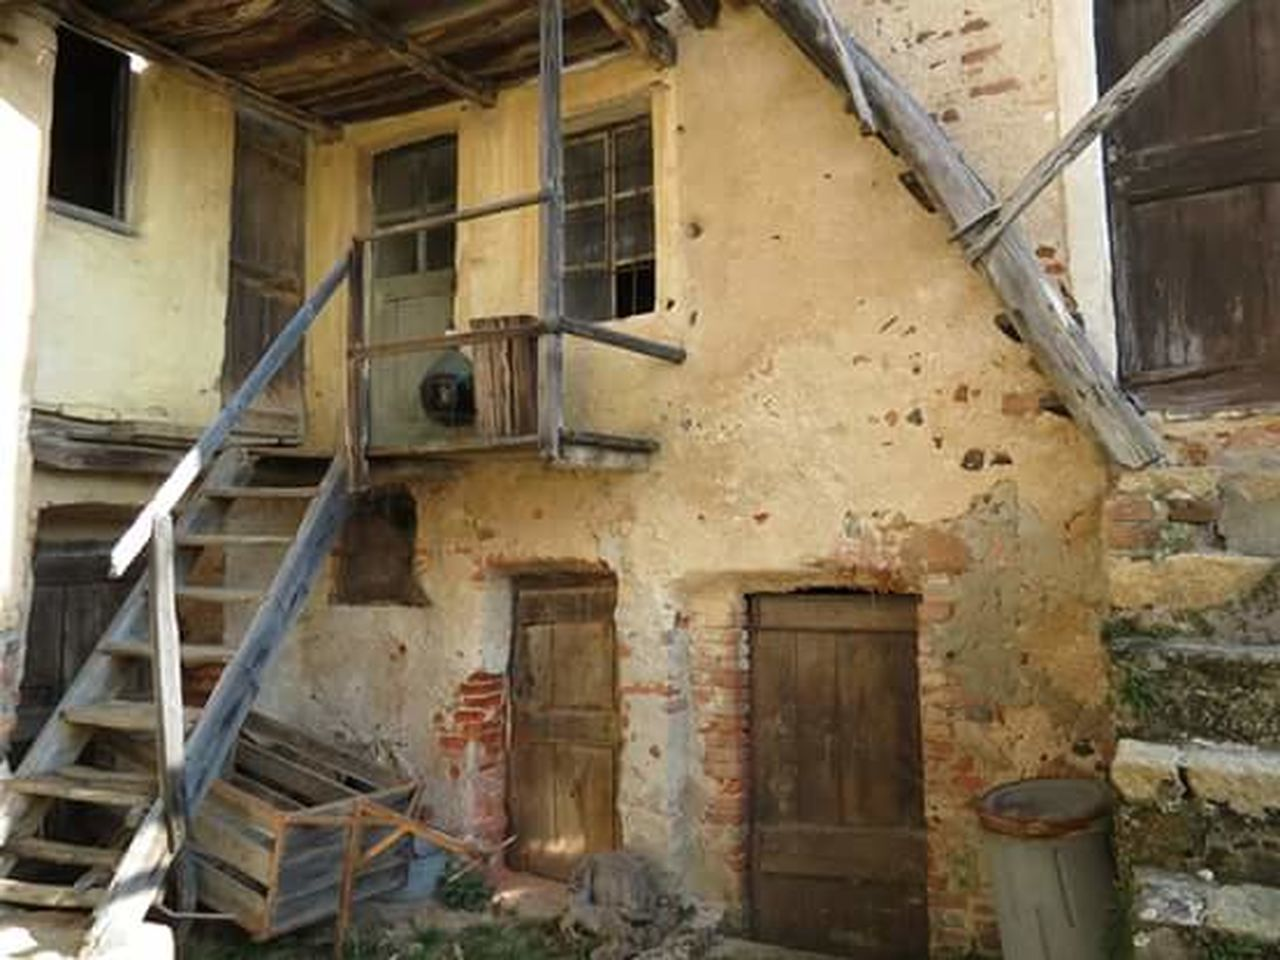 architecture, abandoned, damaged, door, built structure, window, destruction, building exterior, no people, rotting, day, indoors, prison